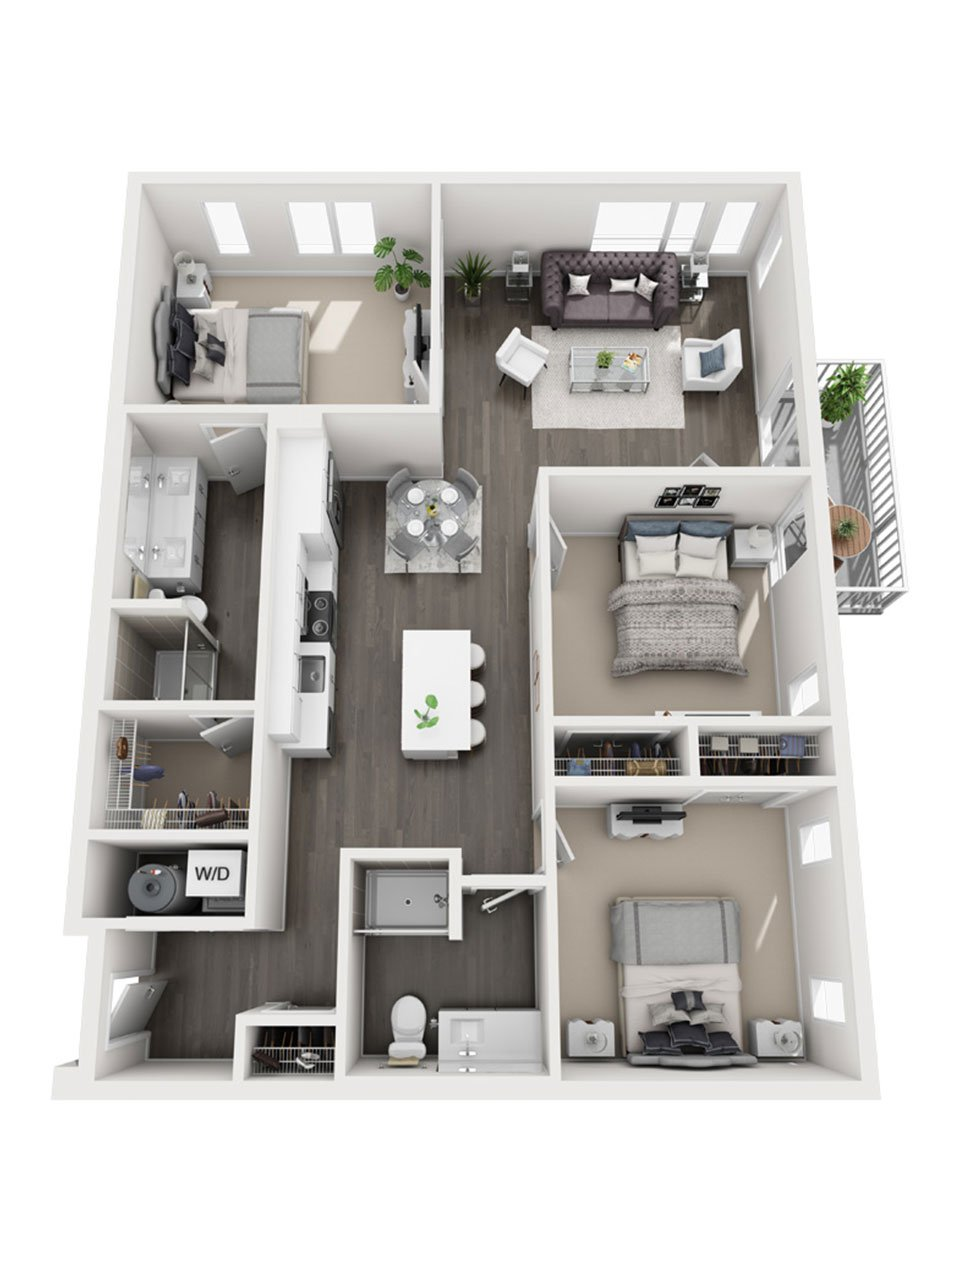 Plan 3 Bedroom – C3 | 2 Bath